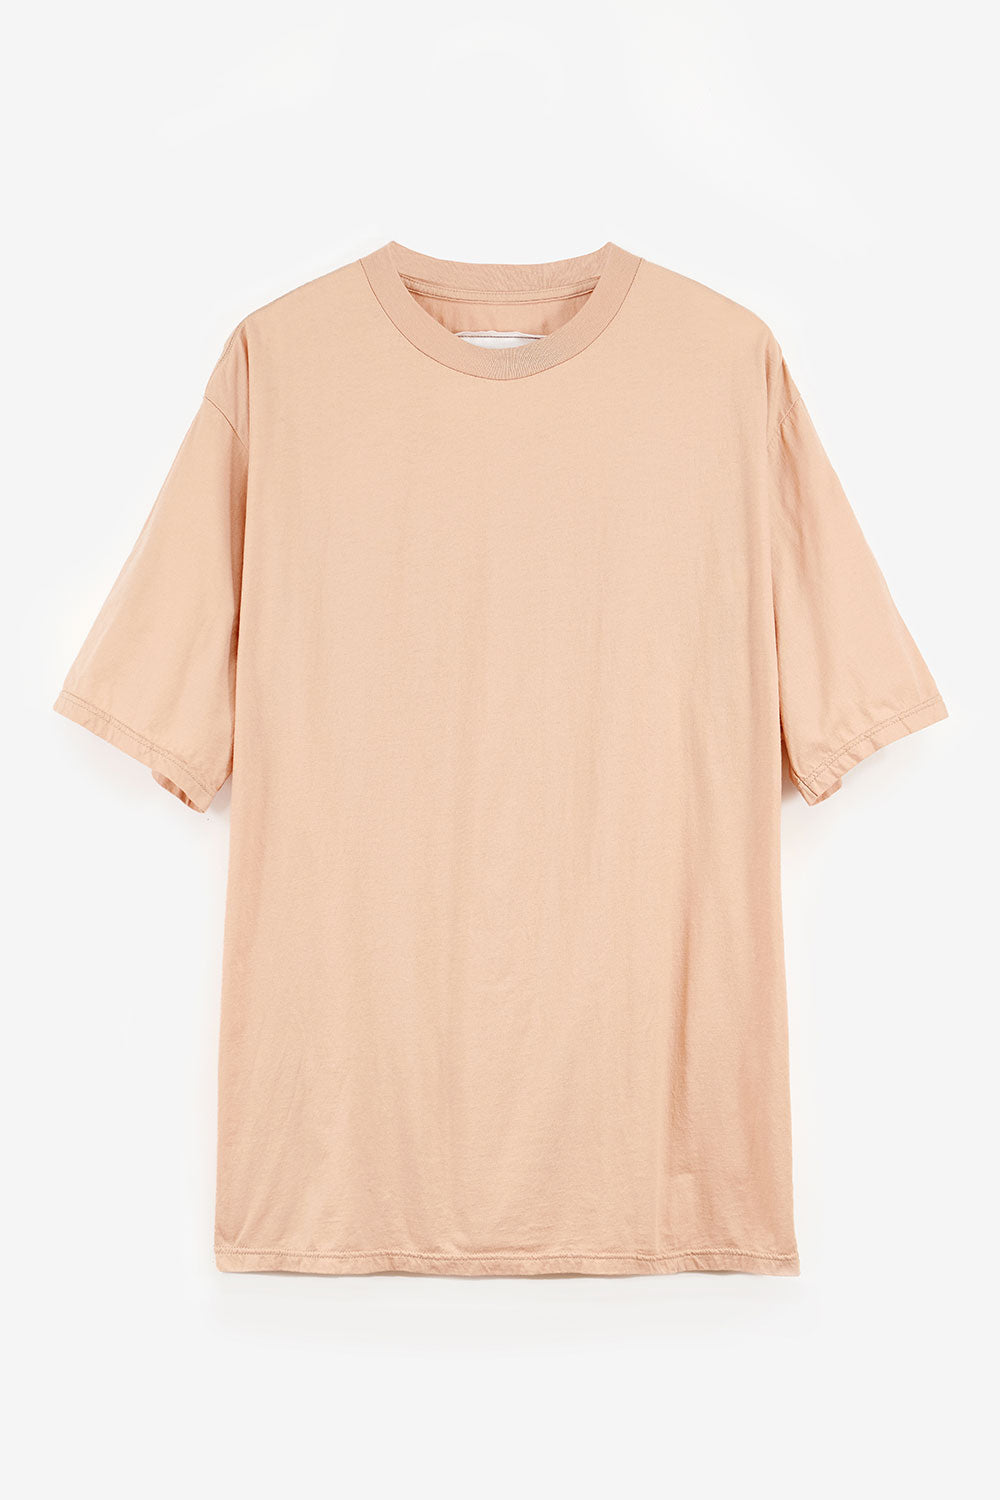 Alabama Chanin The Boyfriend Tee Lightweight Oversized Tee with Short Sleeves in Pink